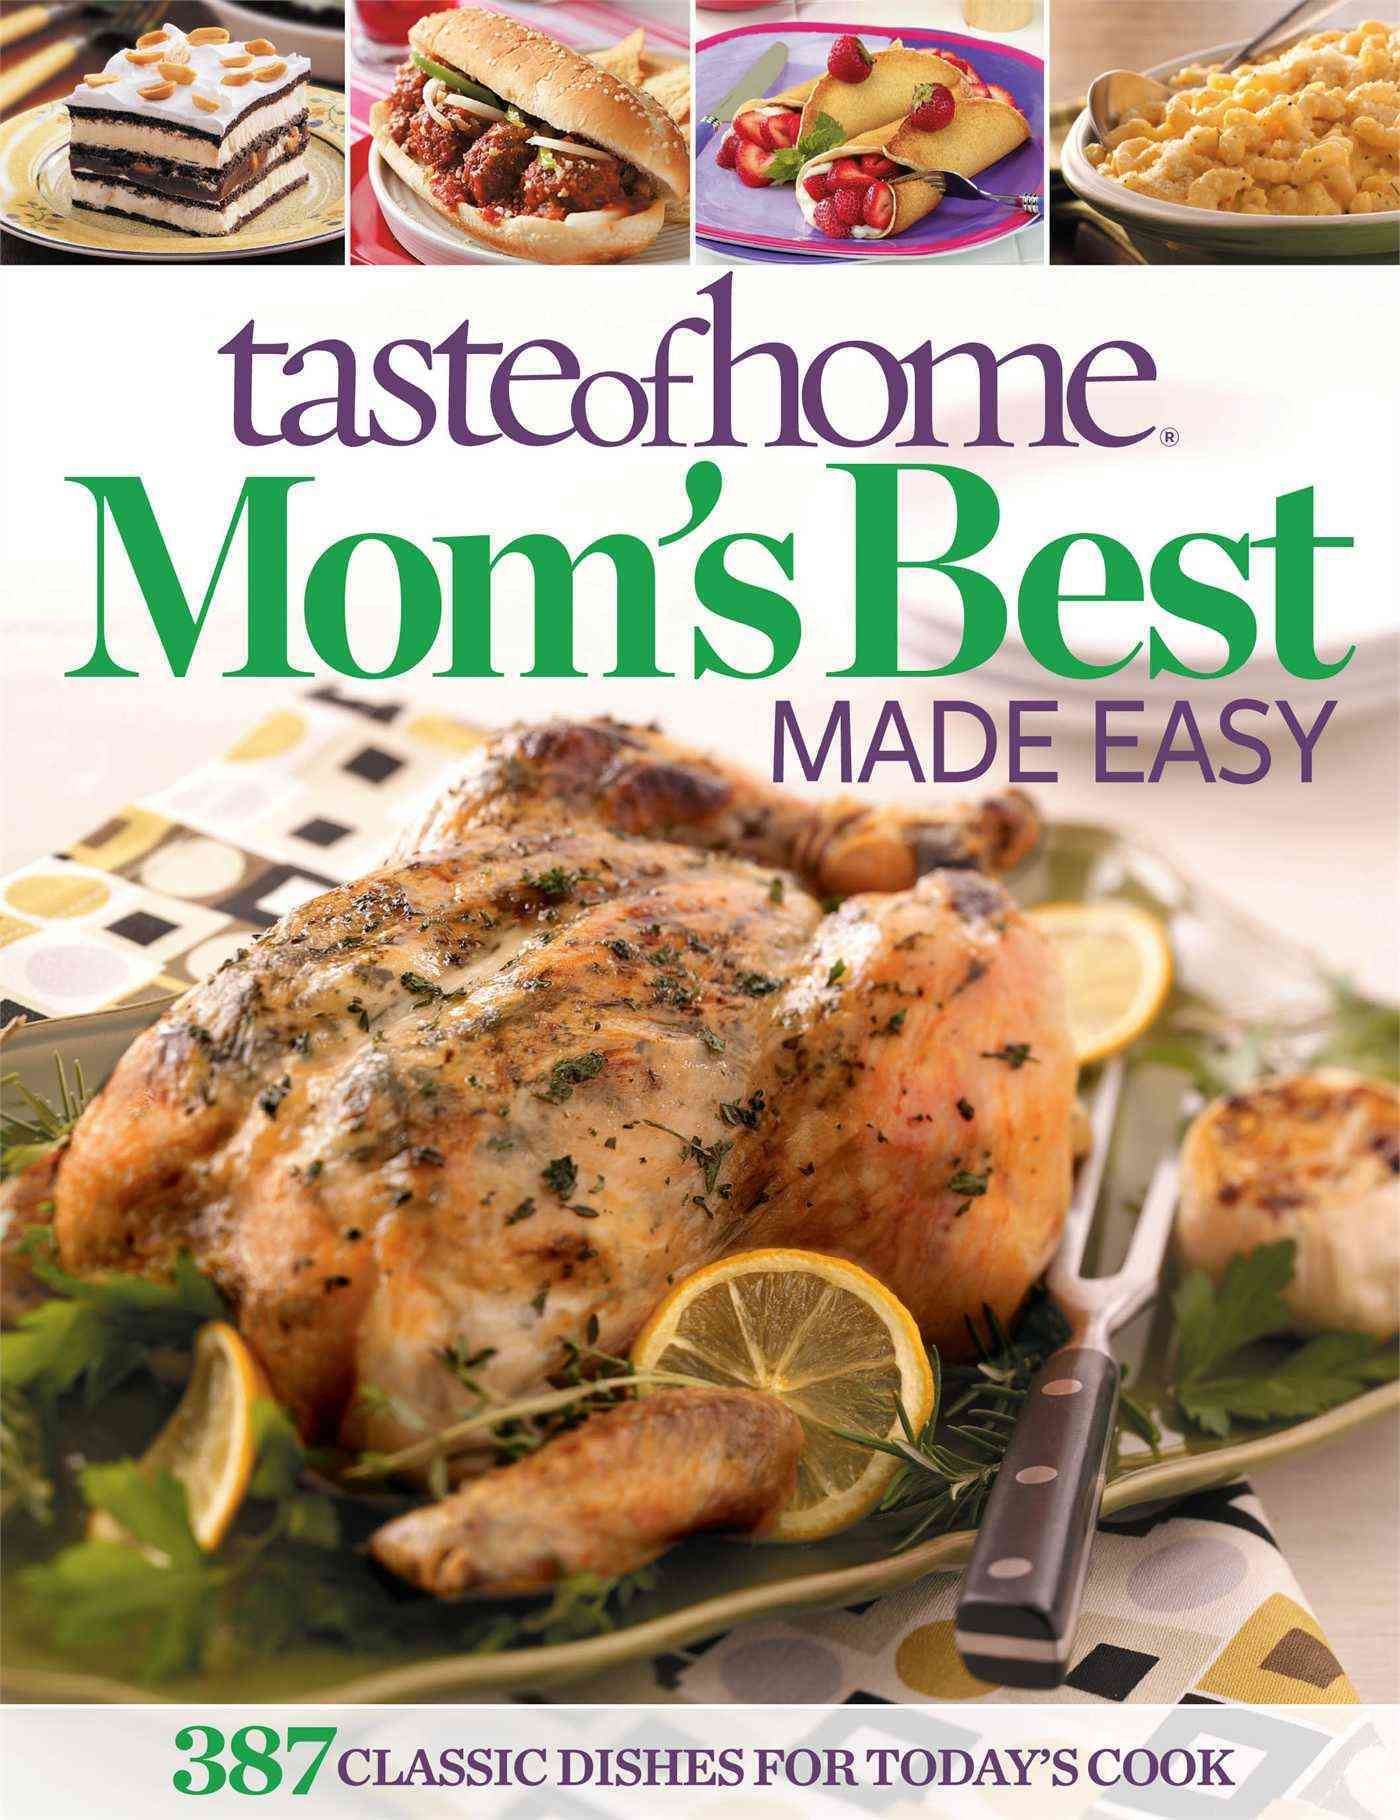 Taste of Home Mom's Best Made Easy (Paperback)